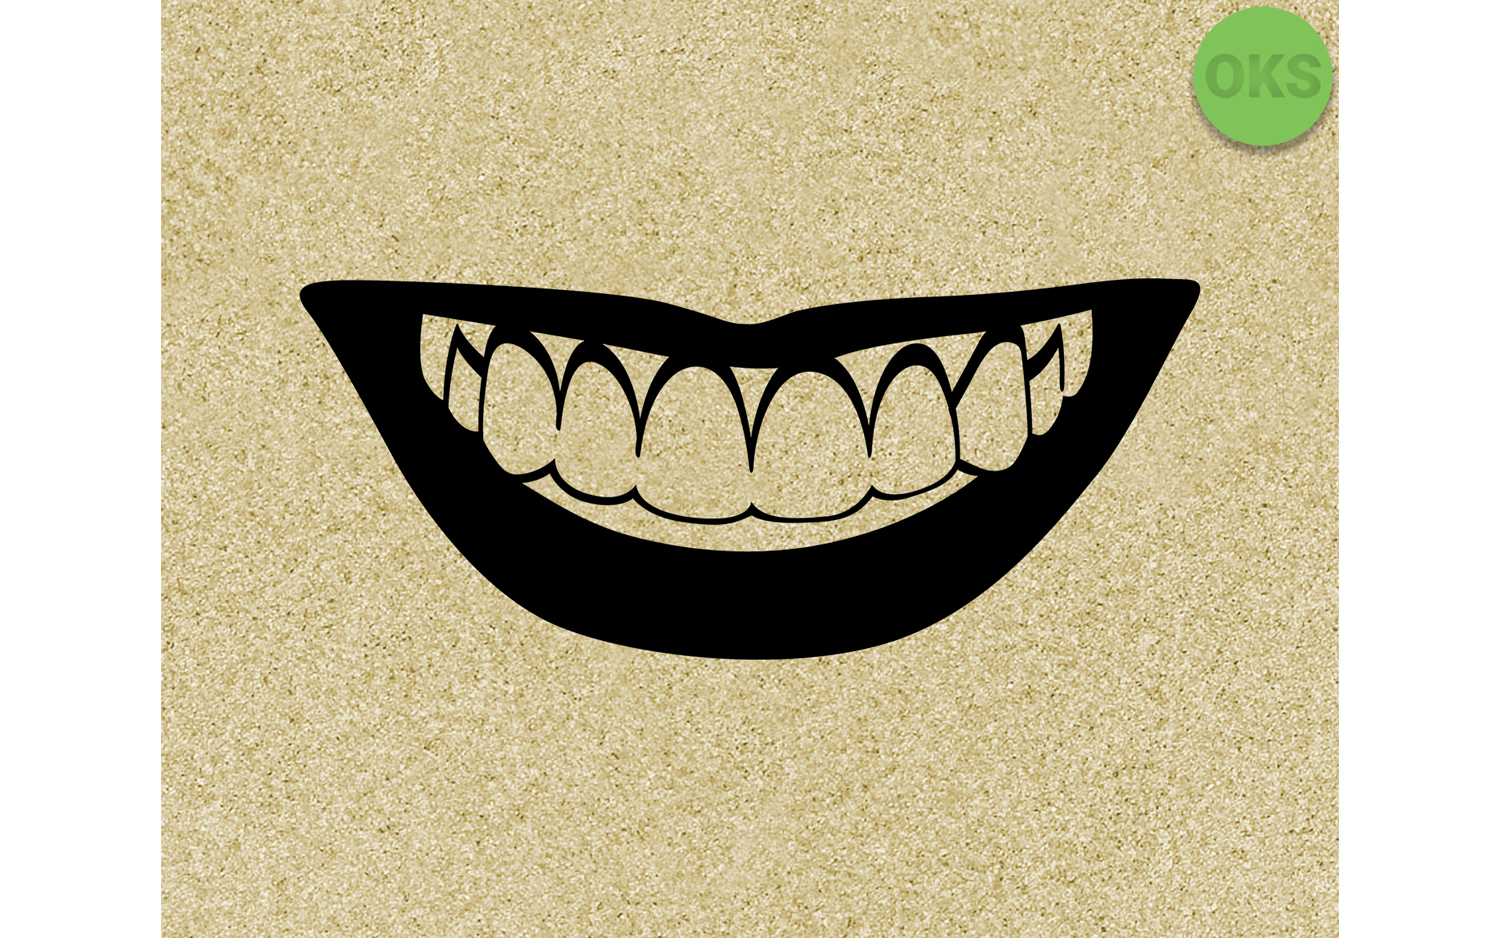 Download Free Smile Graphic By Crafteroks Creative Fabrica for Cricut Explore, Silhouette and other cutting machines.